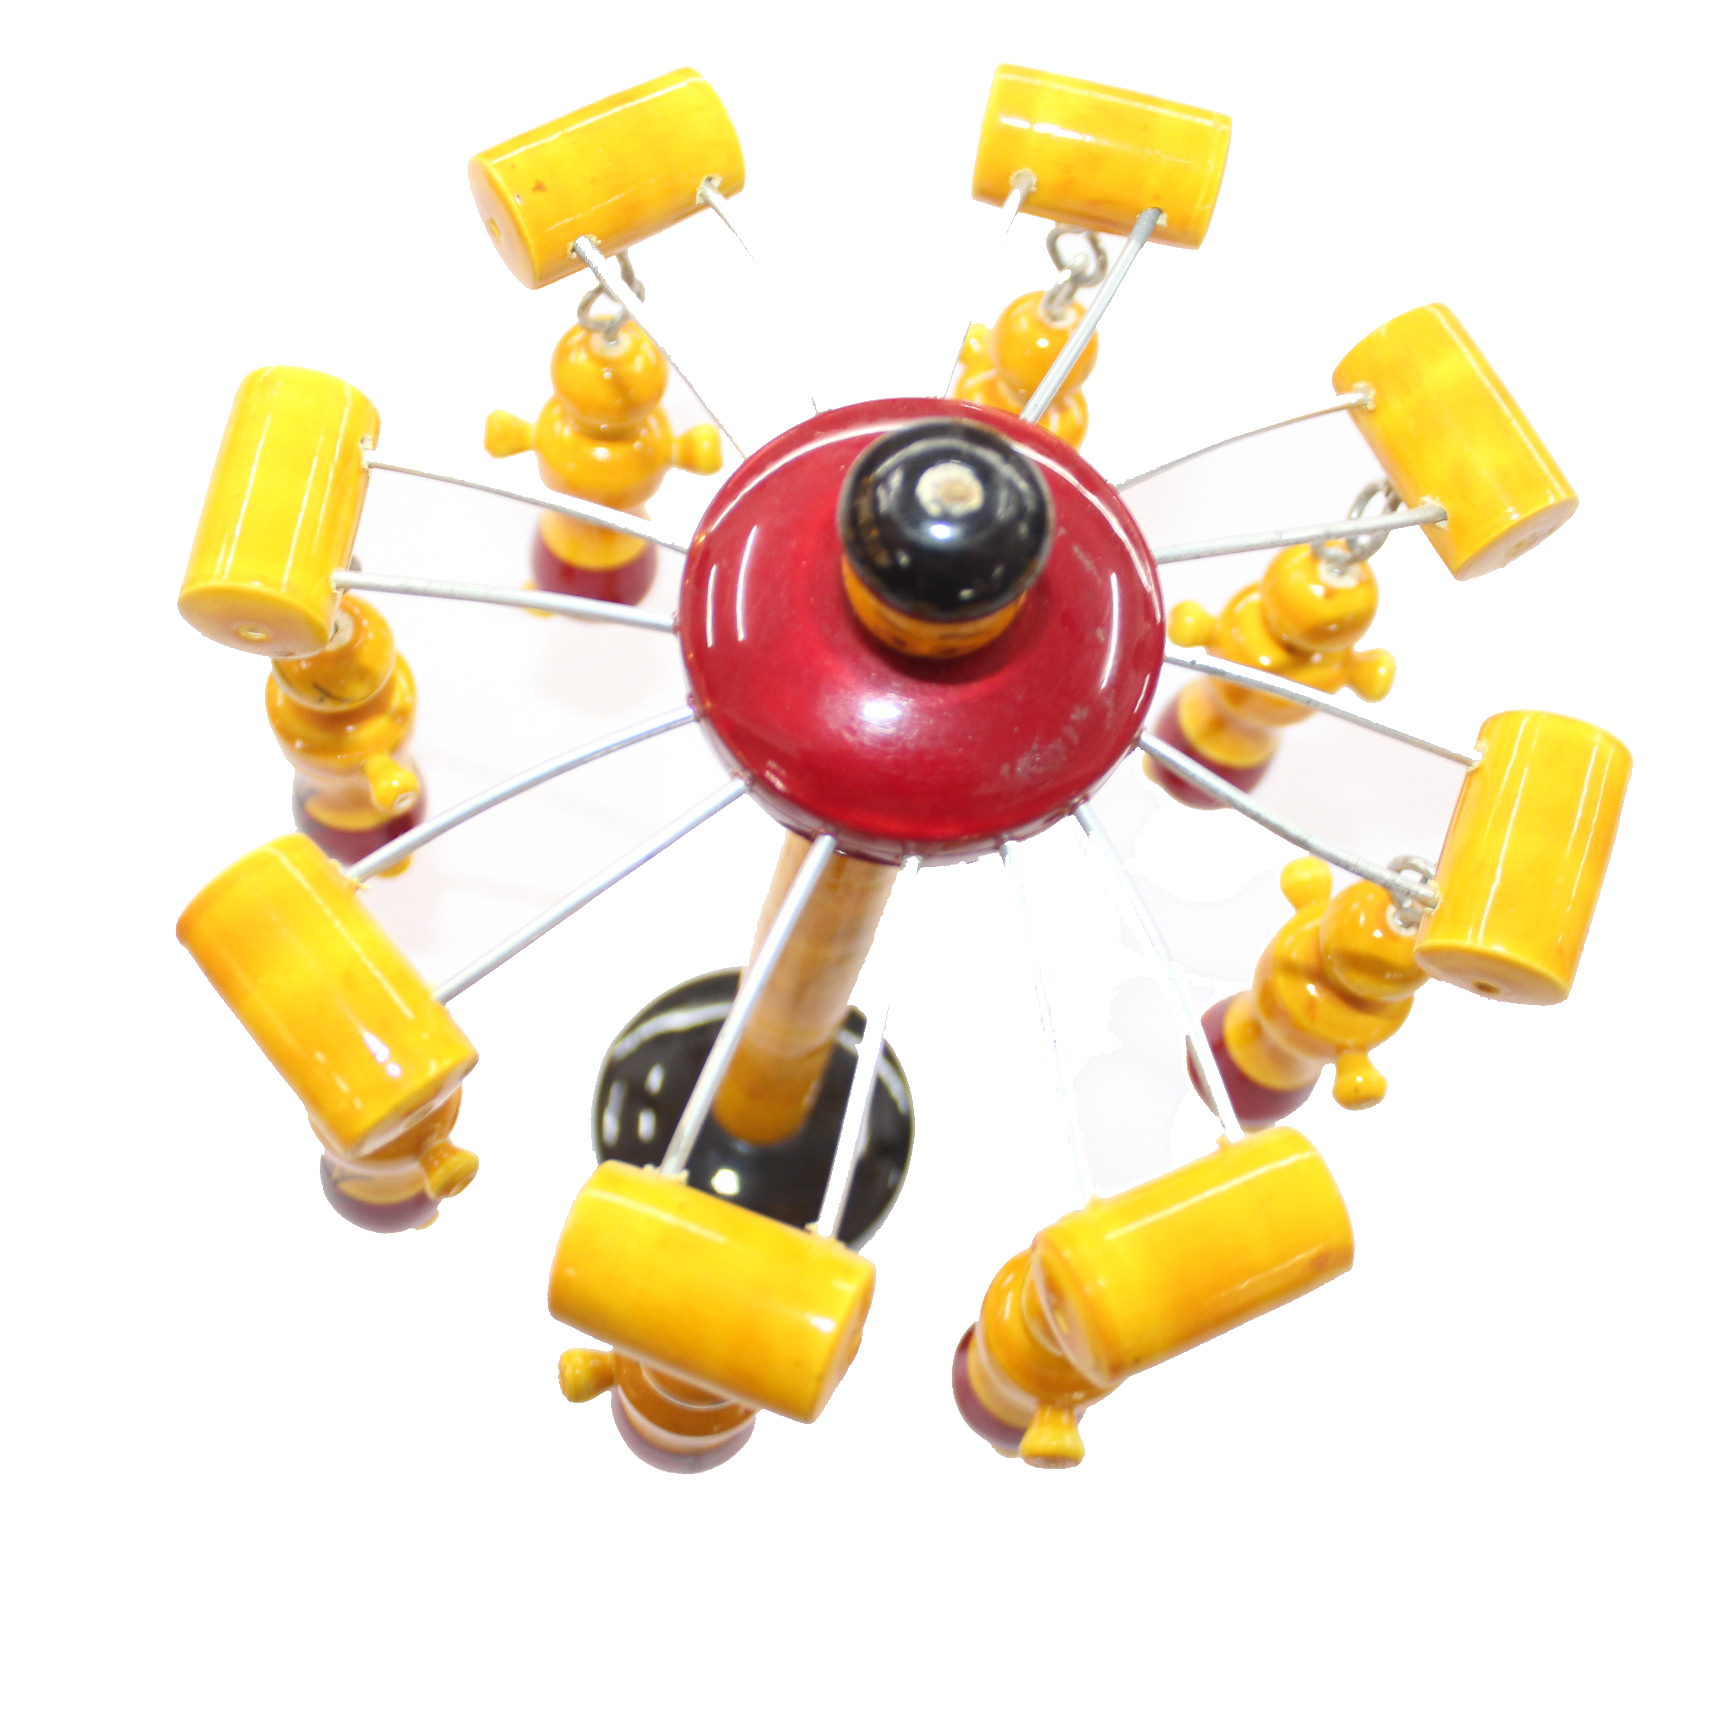 Handmade Wooden Toy   Channapatna Wooden Toys Online   GI TAGGED